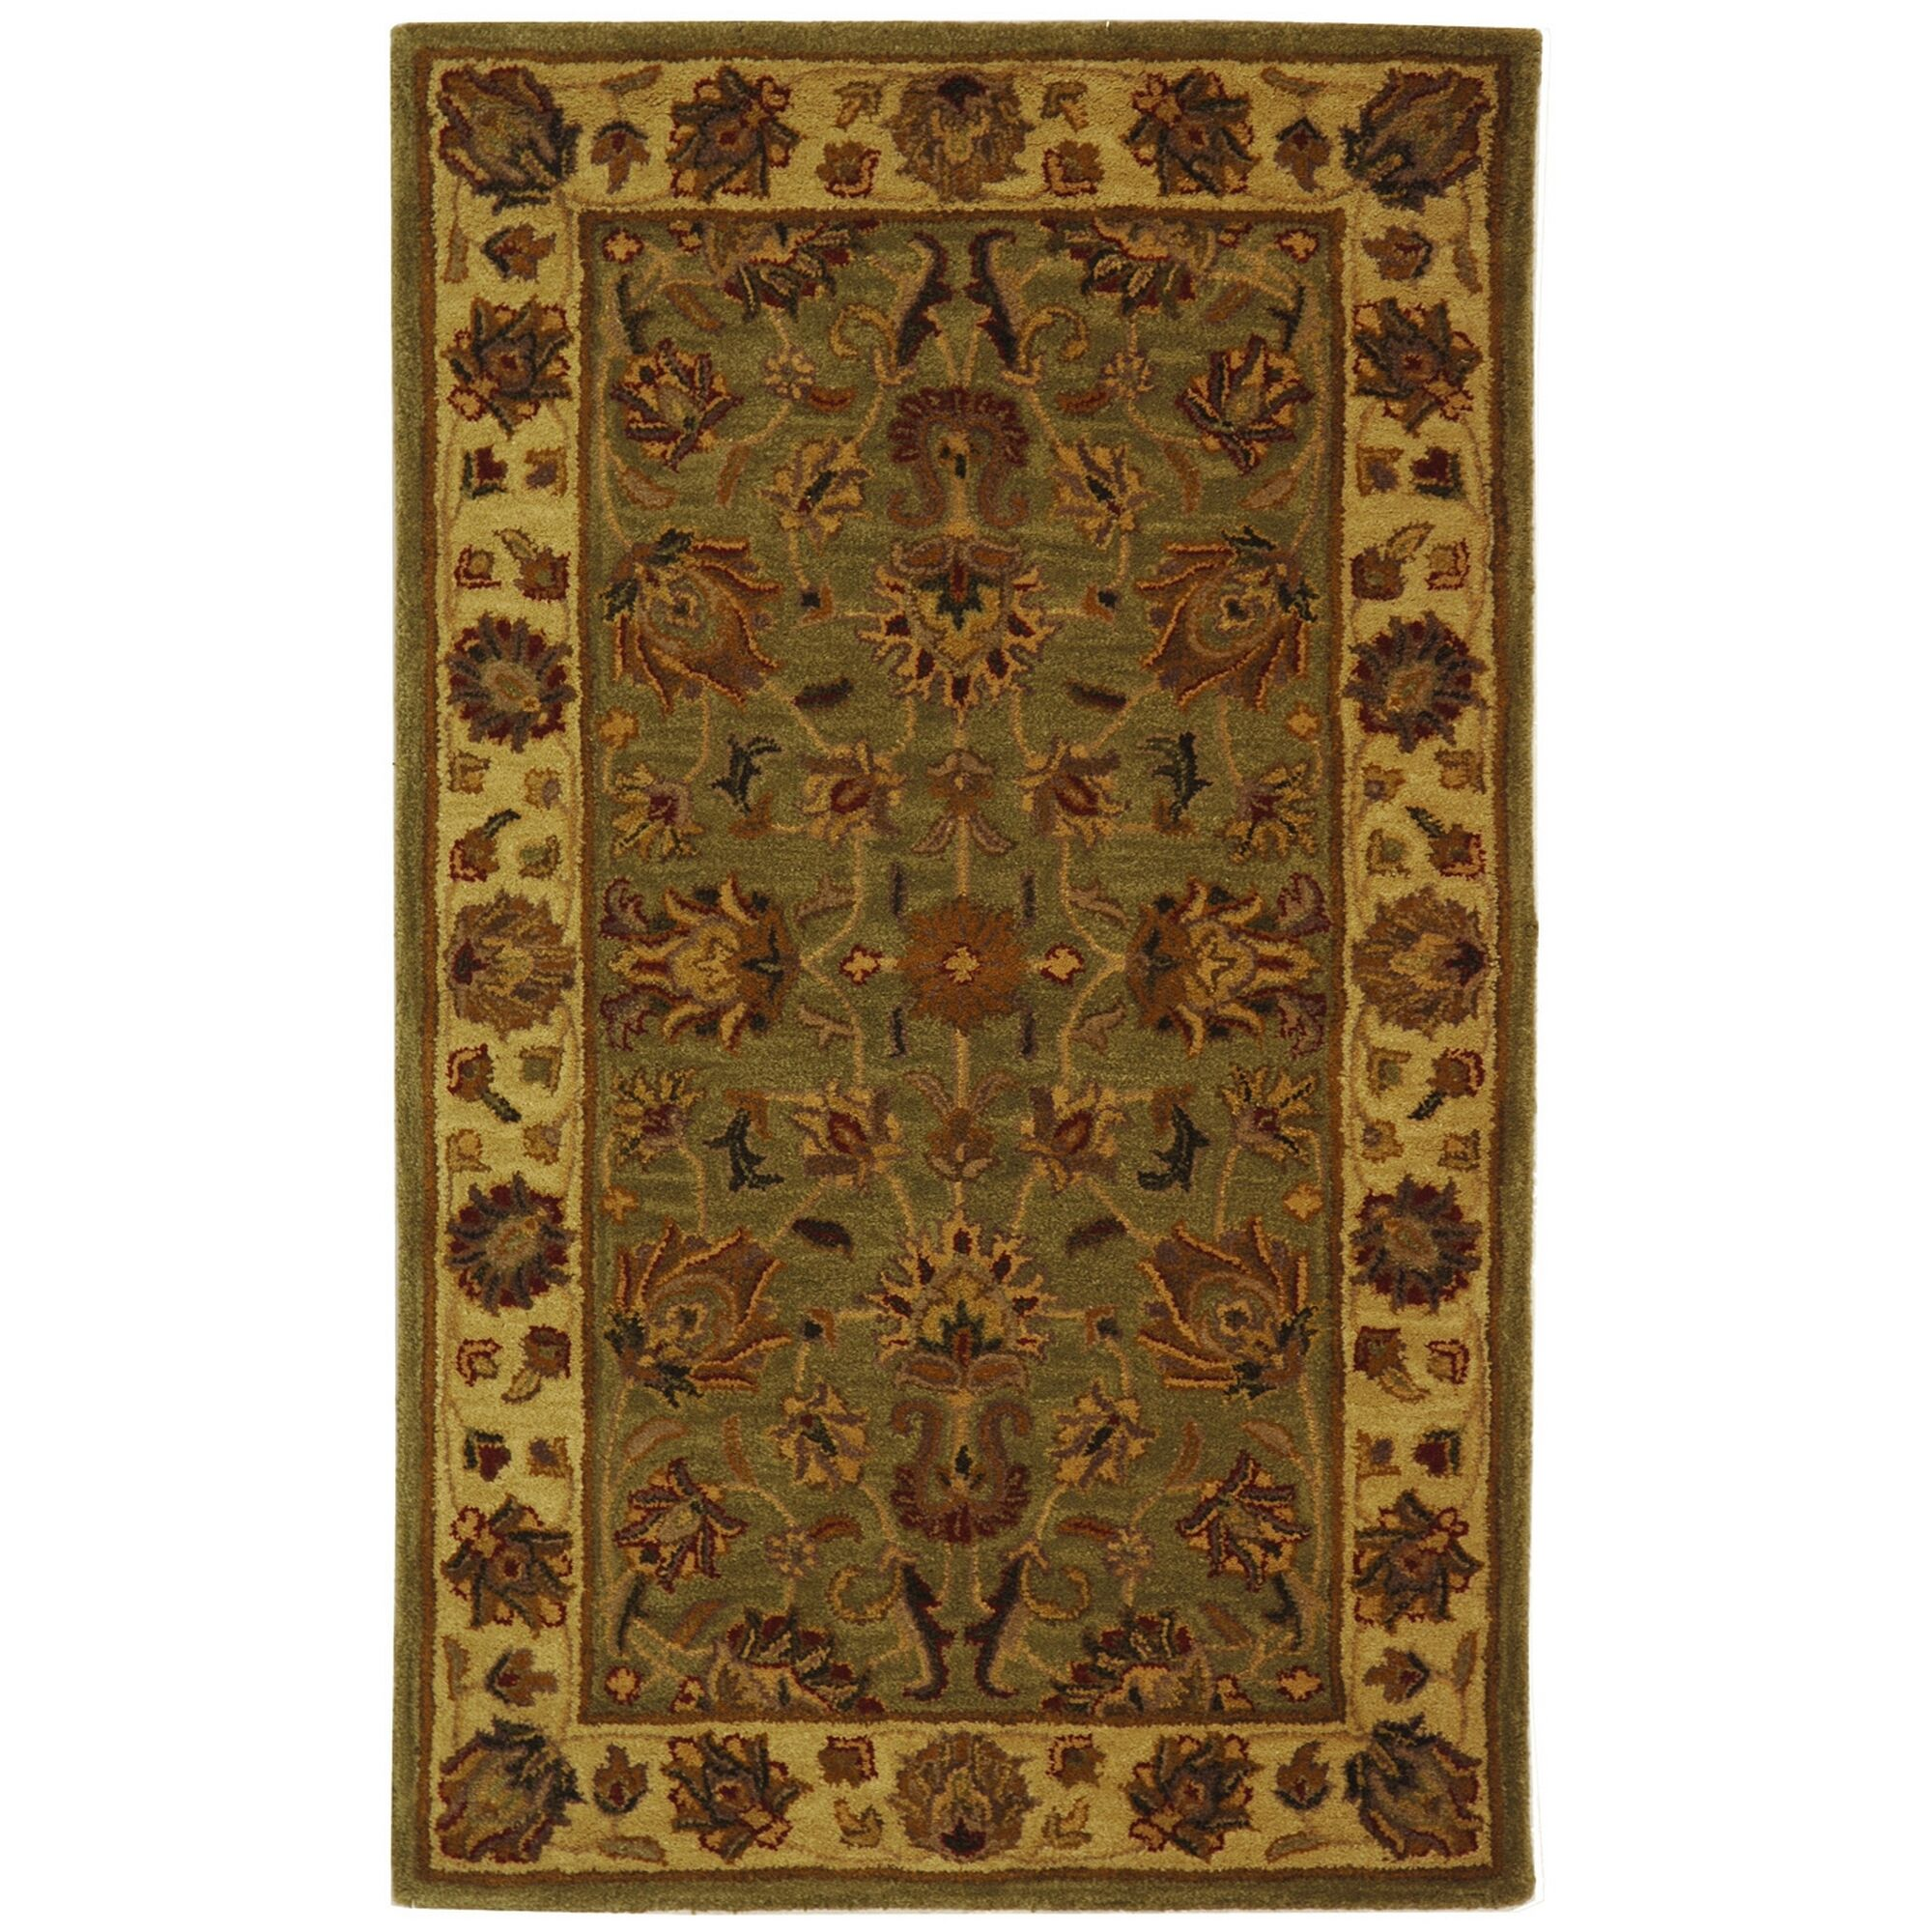 Cranmore Hand-Tufted Wool Green/Gold Area Rug Rug Size: Rectangle 9'6